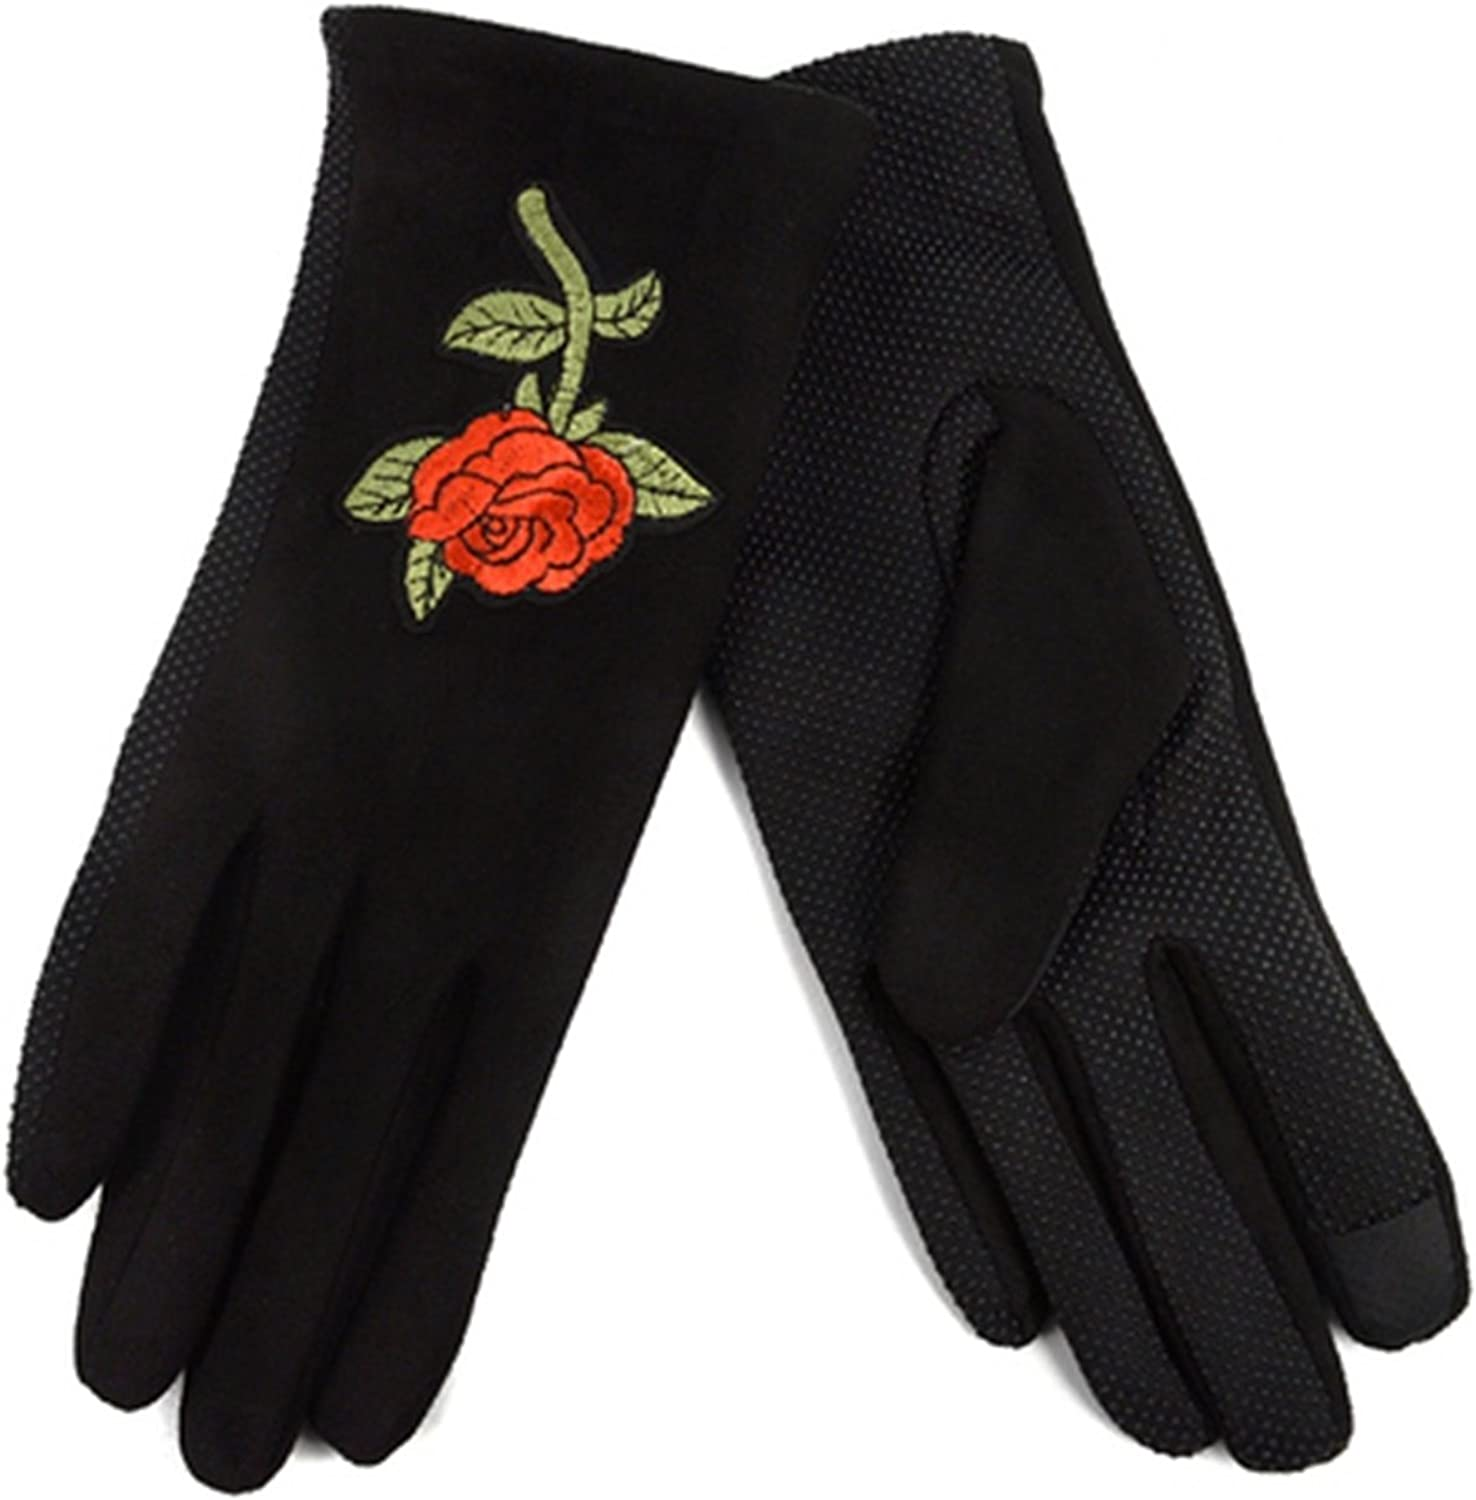 Women's Red Rose Embroidered Winter Gloves W Fleece Lining